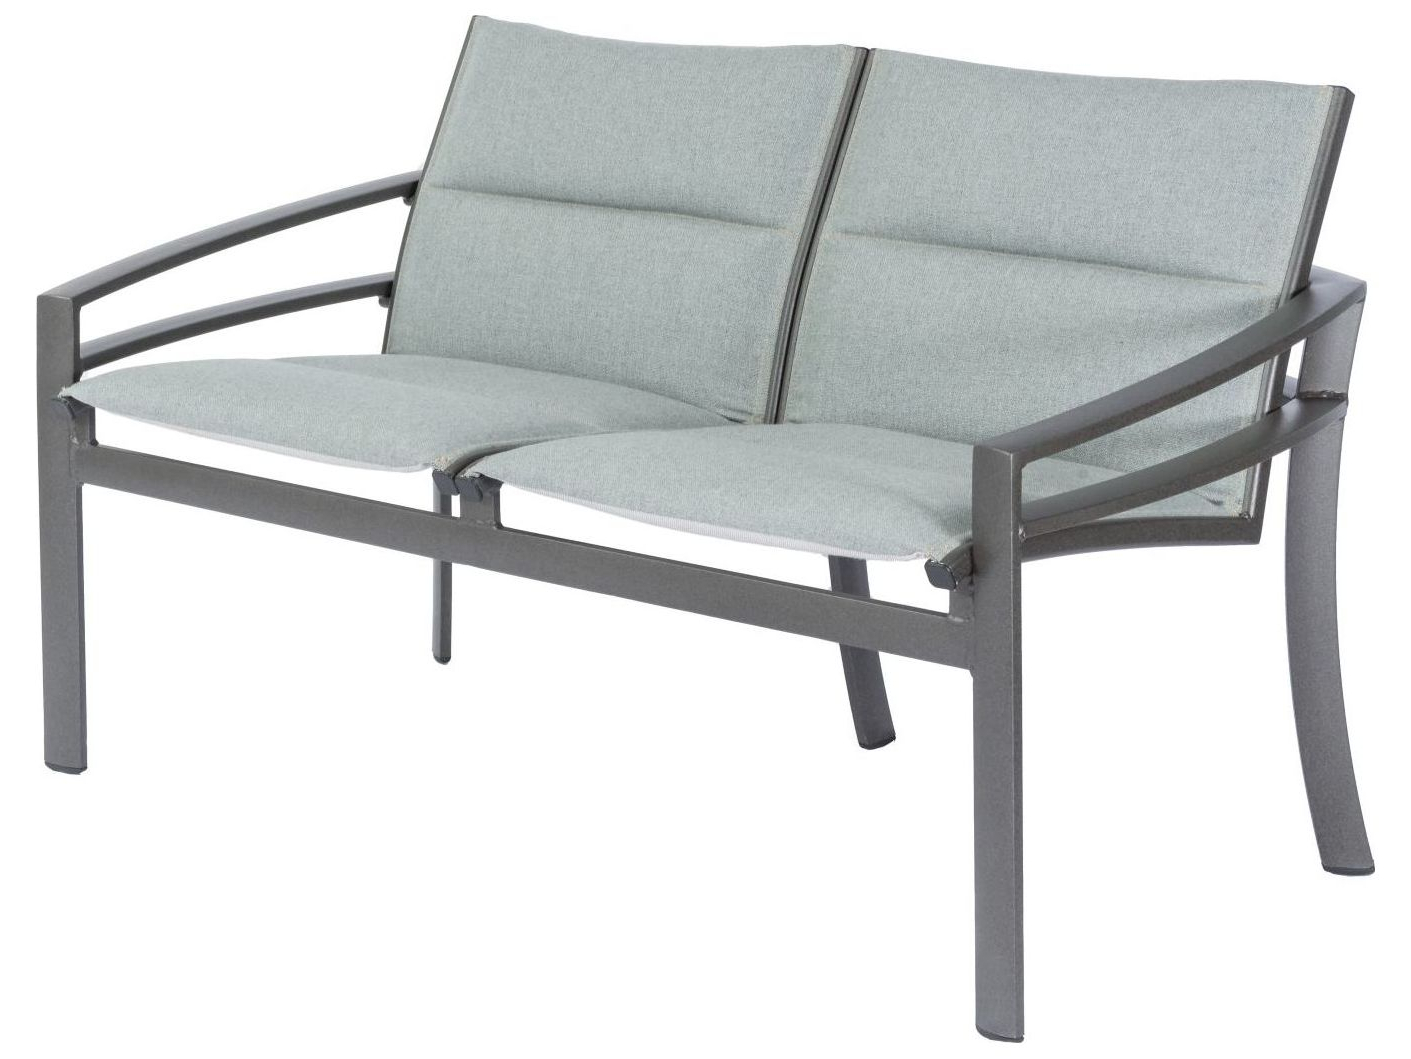 Most Recent Tropitone Kor Padded Sling Aluminum Loveseat With Regard To Padded Sling Double Glider Benches (Gallery 27 of 30)